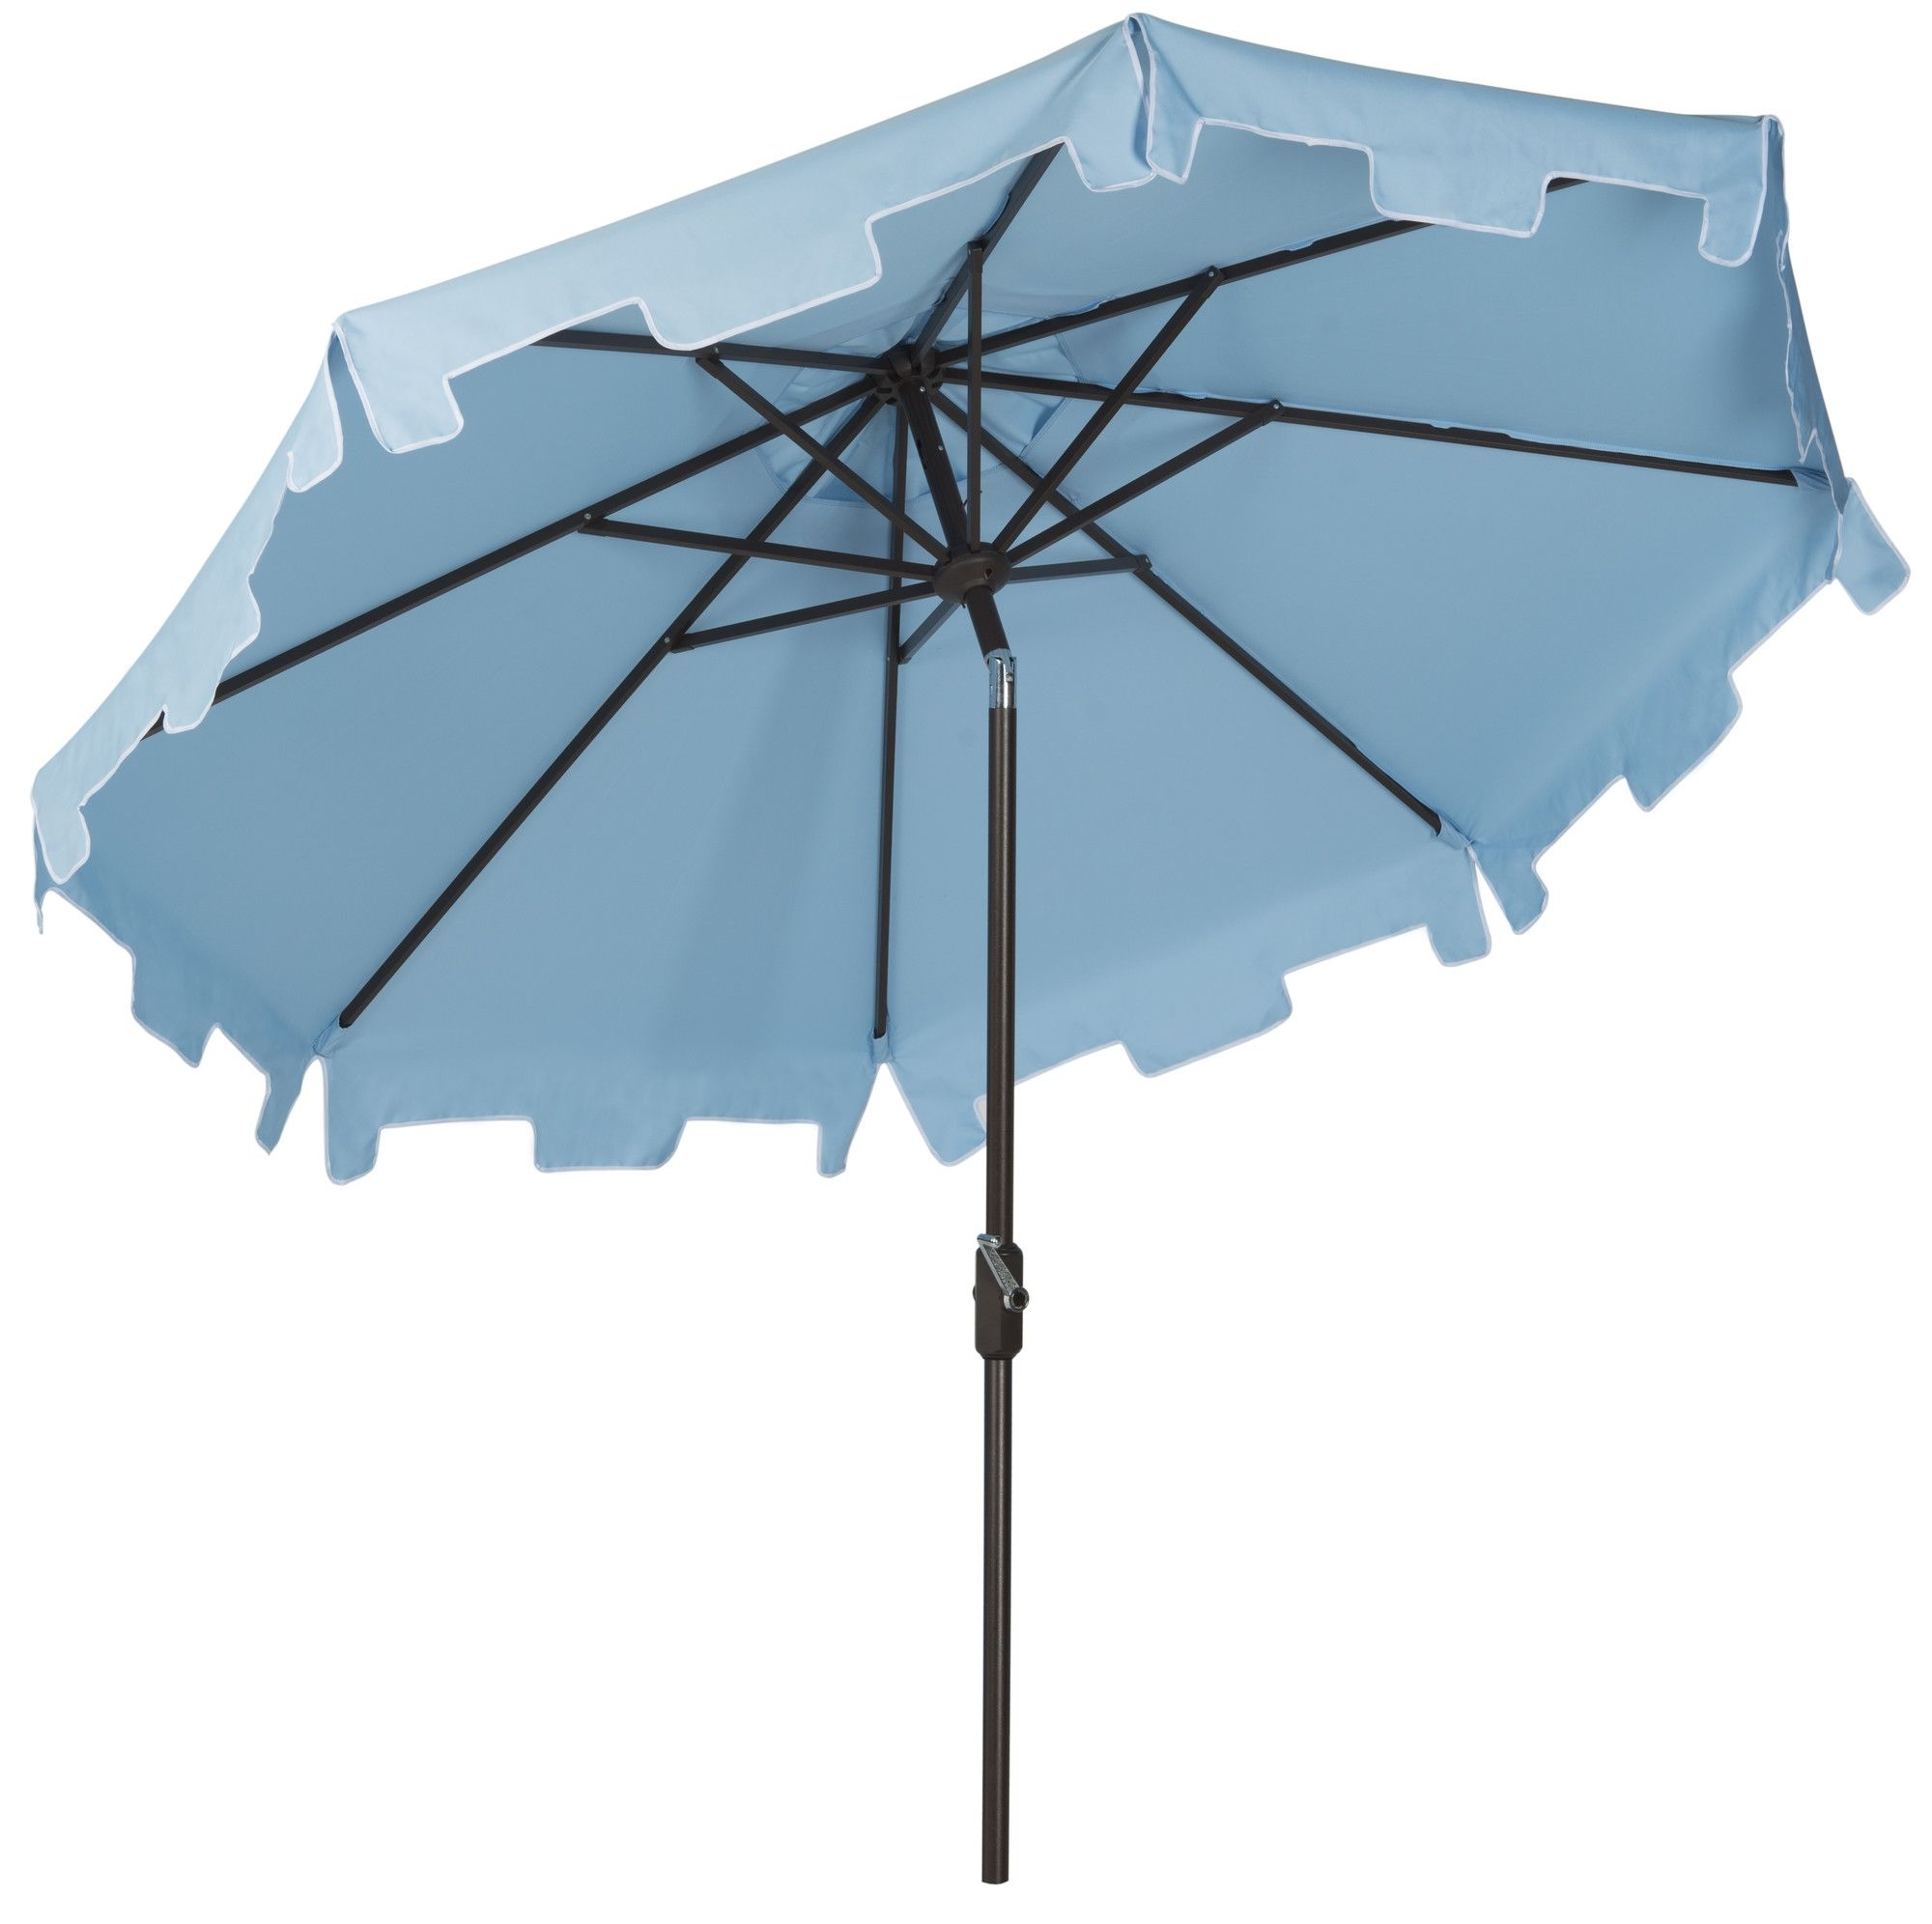 Wayfair Patio Umbrellas In 2019 Shop Wayfair For All Patio Umbrellas To Match Every Style And Budget (View 10 of 20)